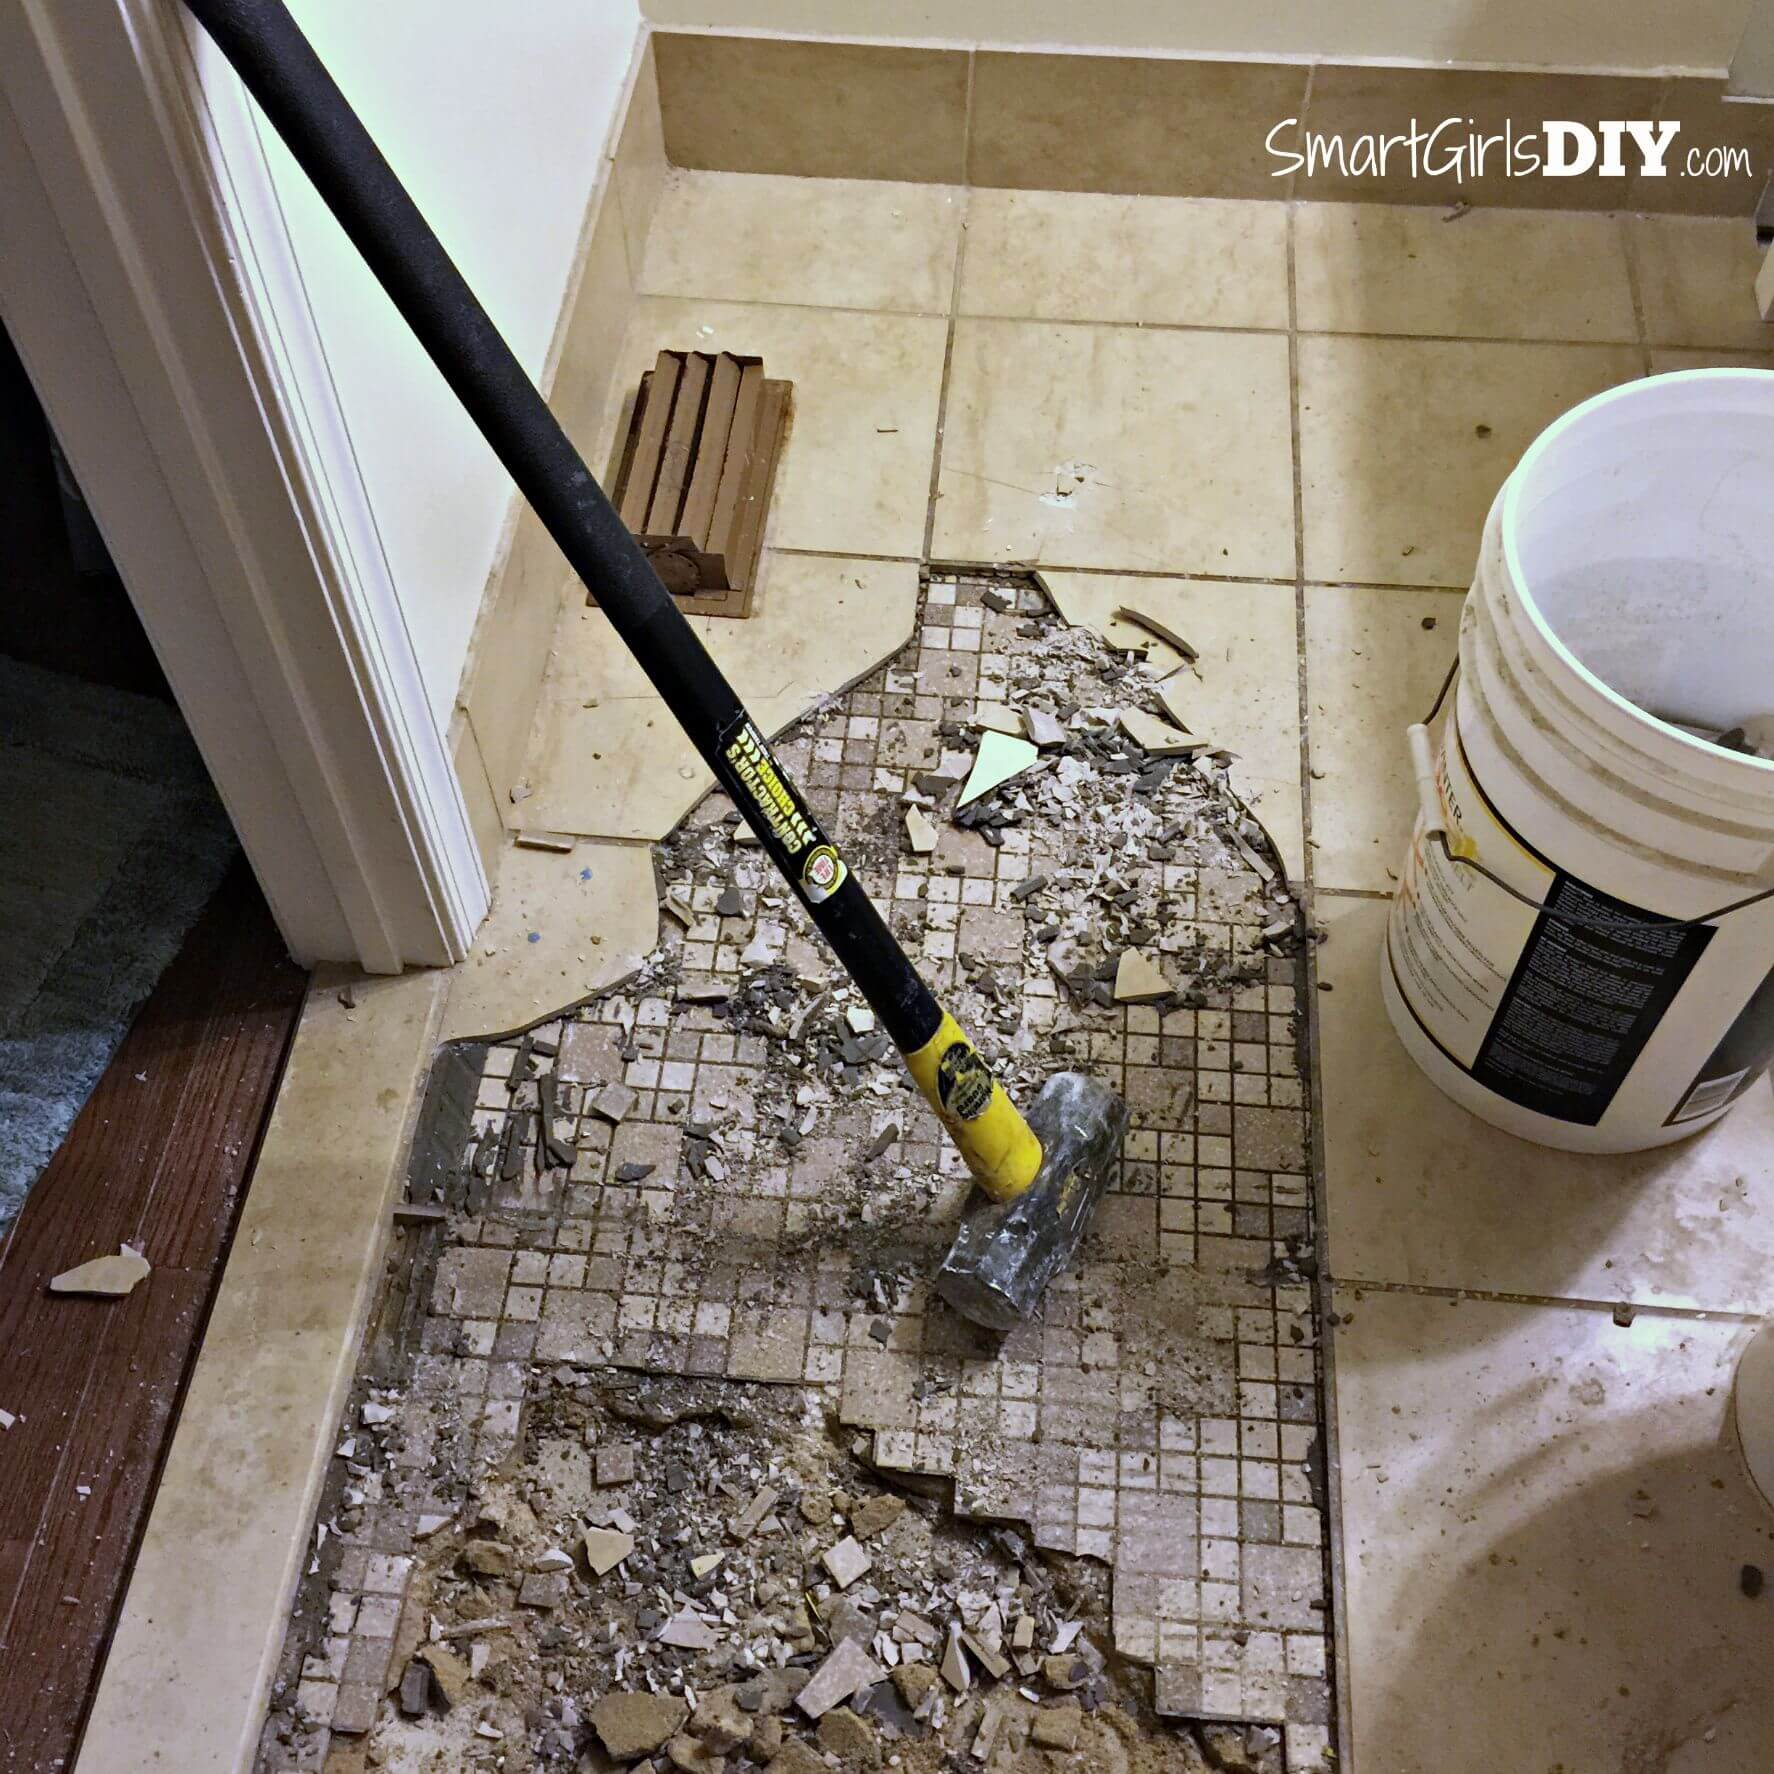 Tiling Bathroom Floor Or Walls First guest bathroom 7: diy hex tile floor